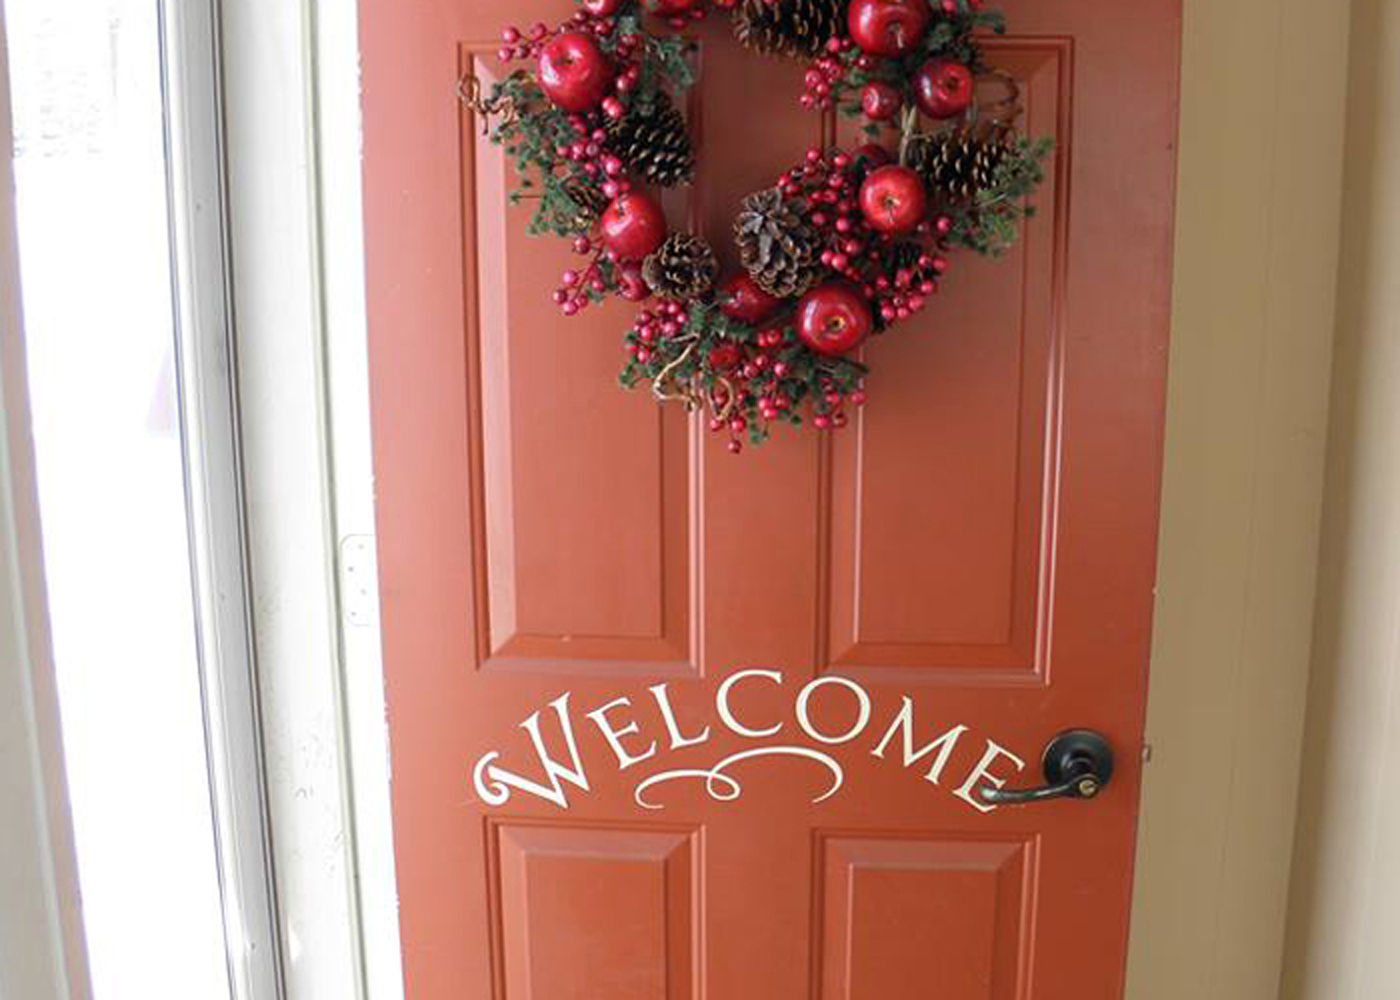 arched-welcome-wall-decal-on-front-door.jpg